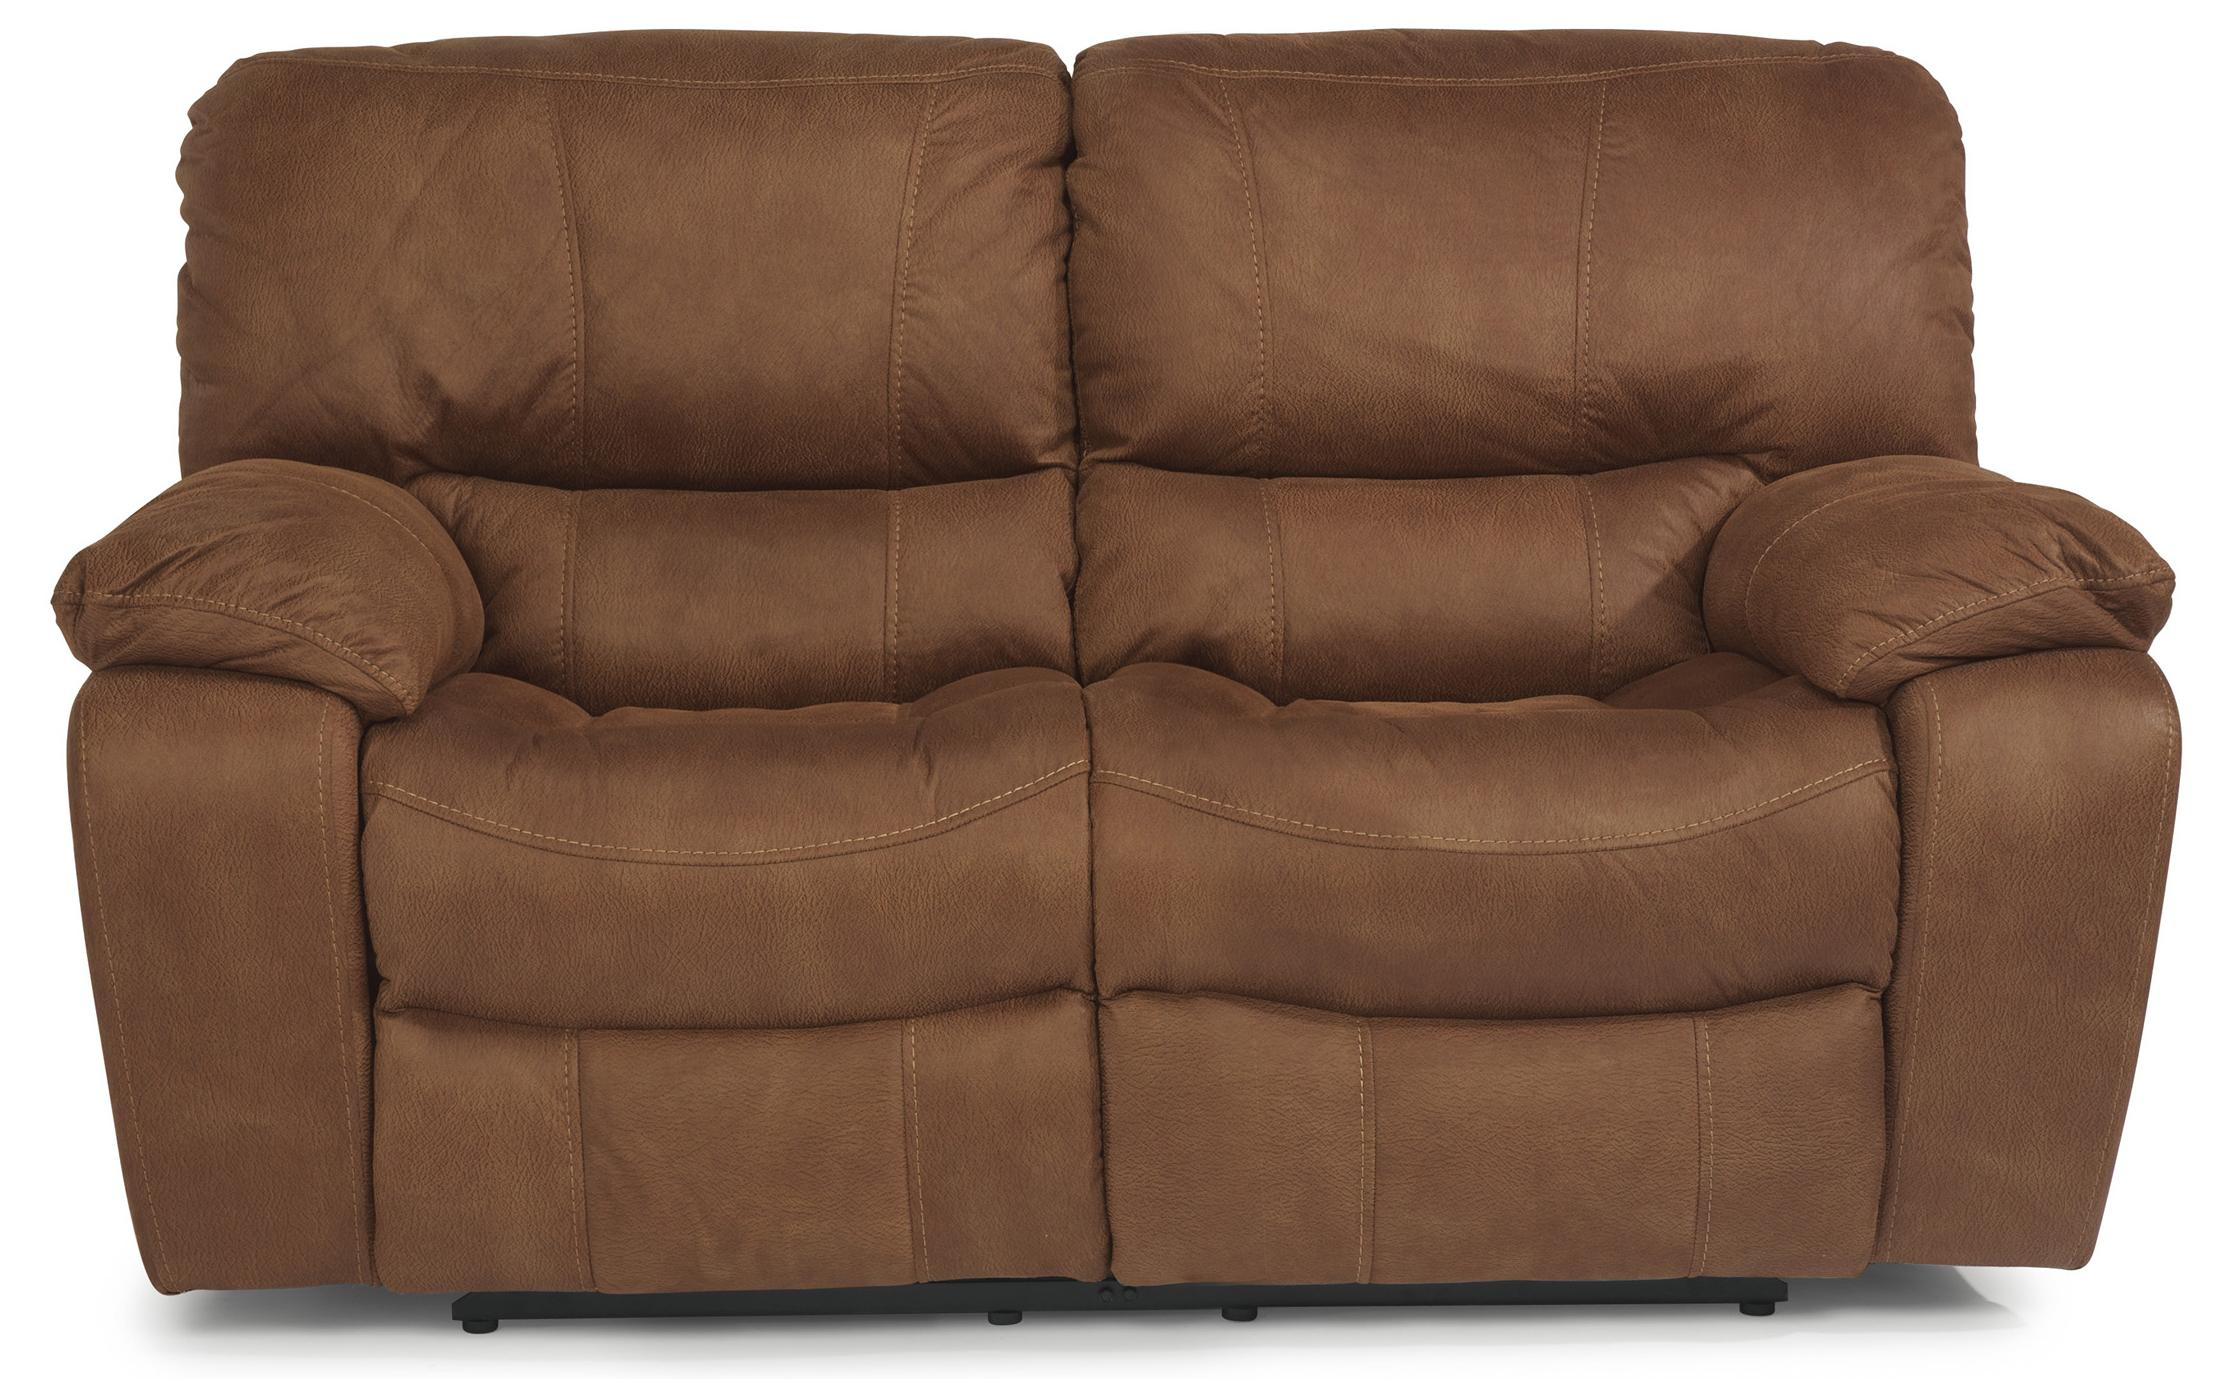 Flexsteel Latitudes - Grandview Power Reclining Love Seat - Item Number: 1541-60P